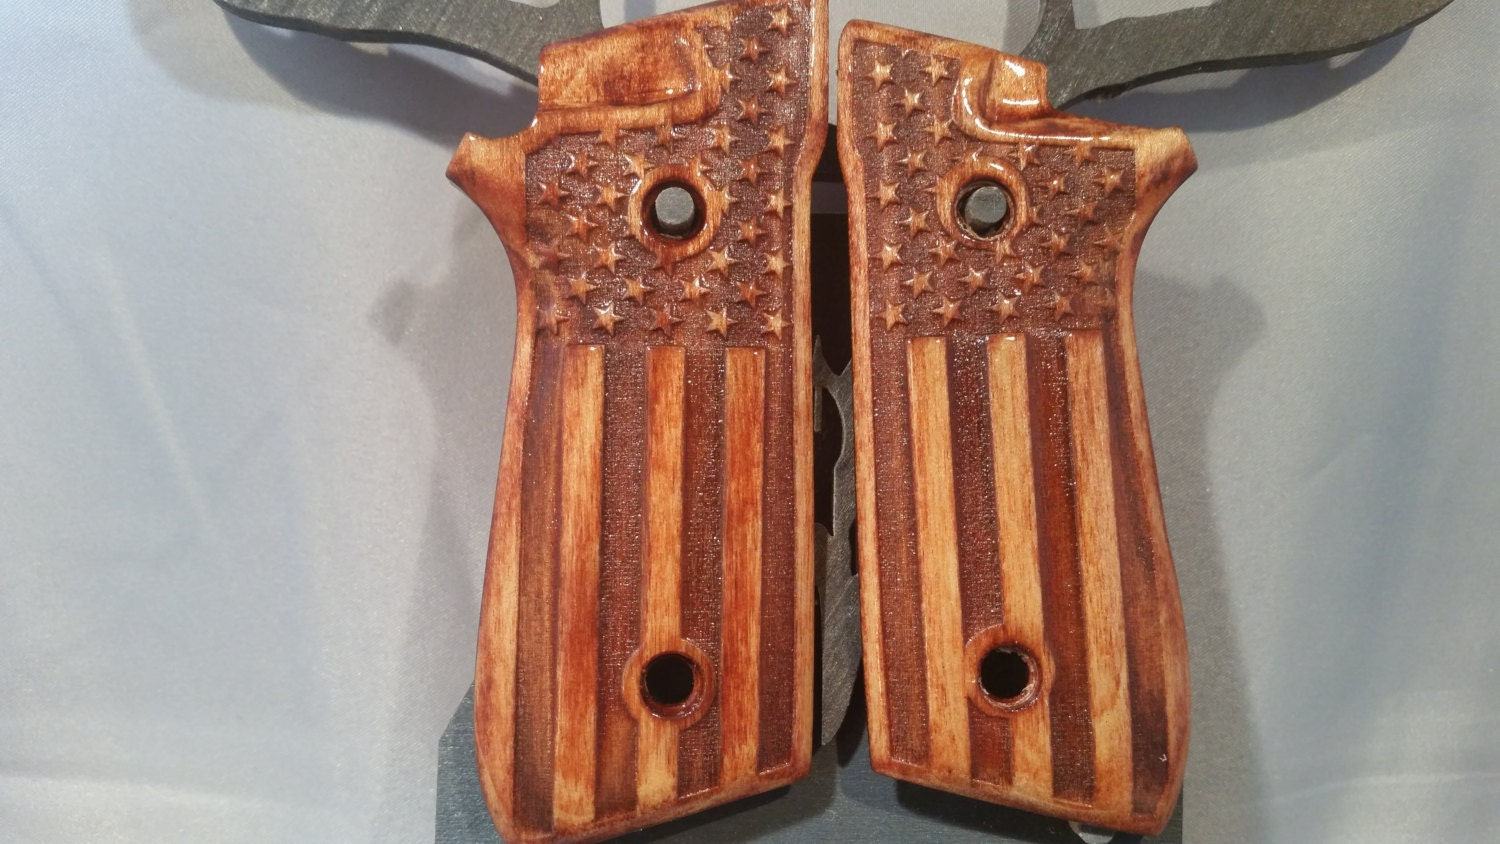 Taurus PT99 with Decock Grips with USA flag engraving